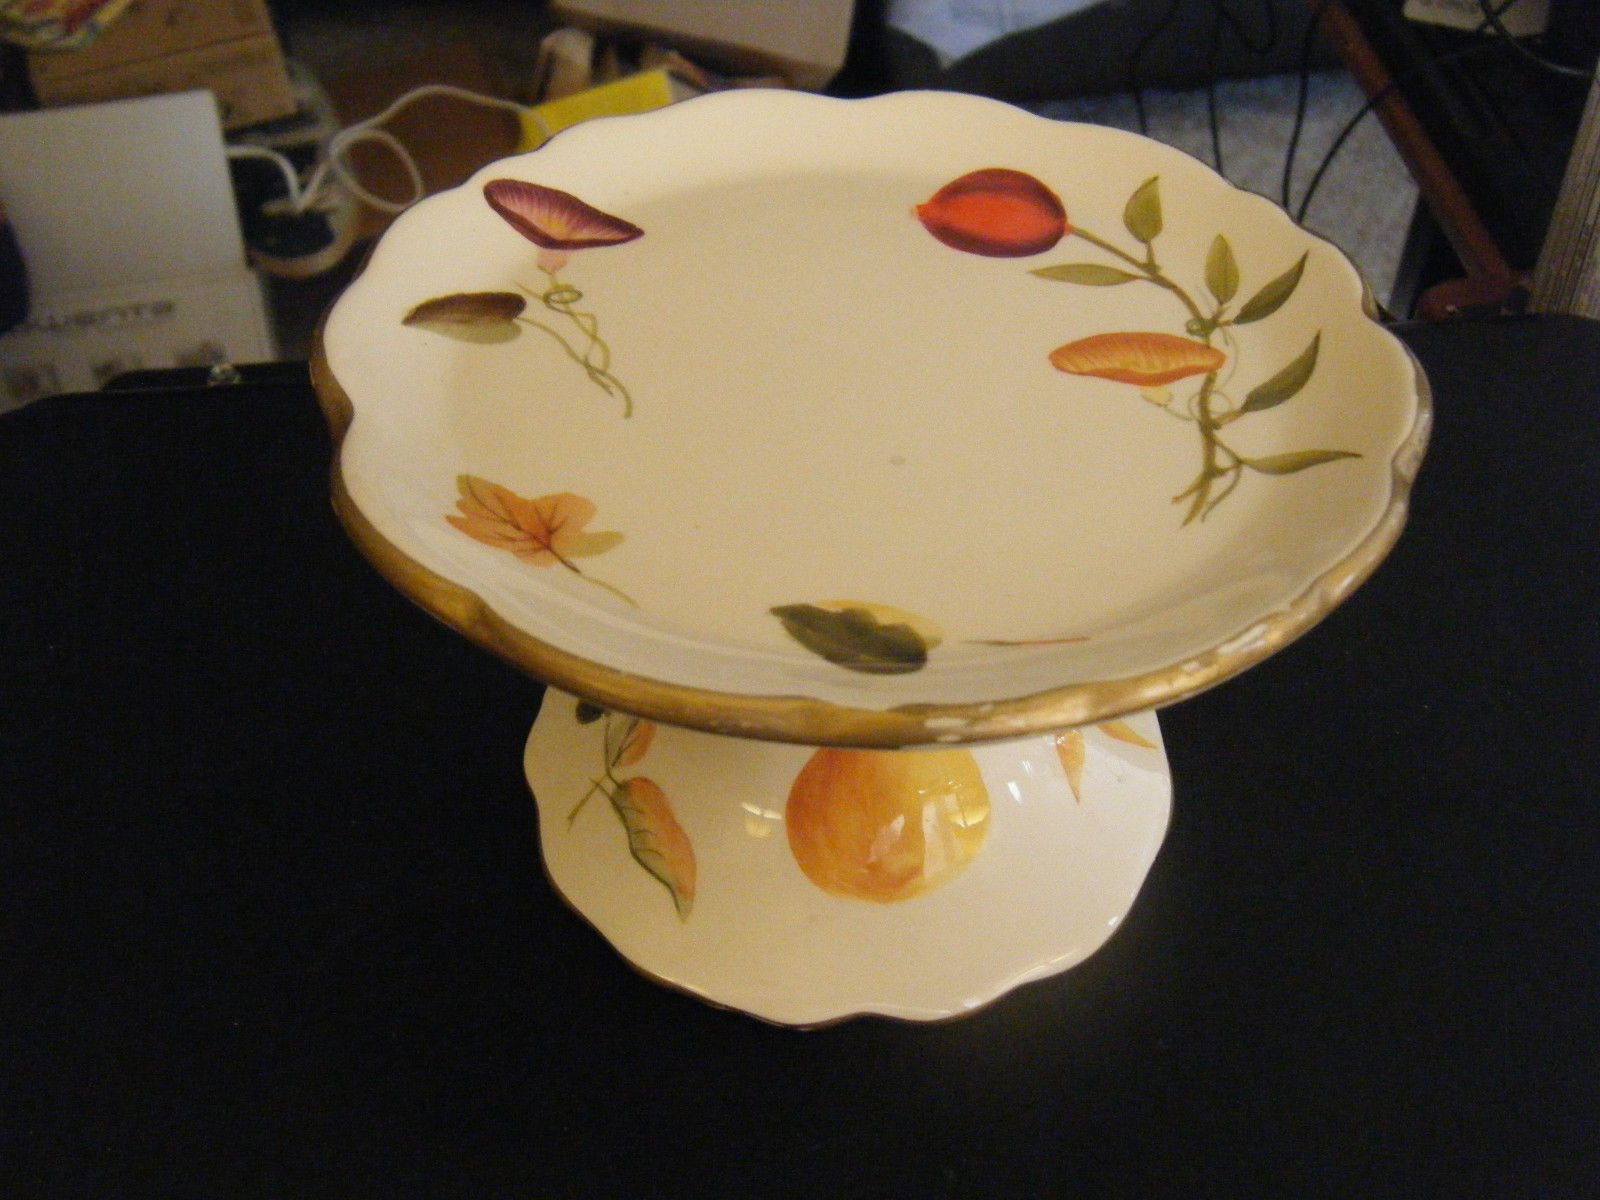 The White Barn Candle Co. Floral & Fruit Pattern Tabletop Candle Pedestal